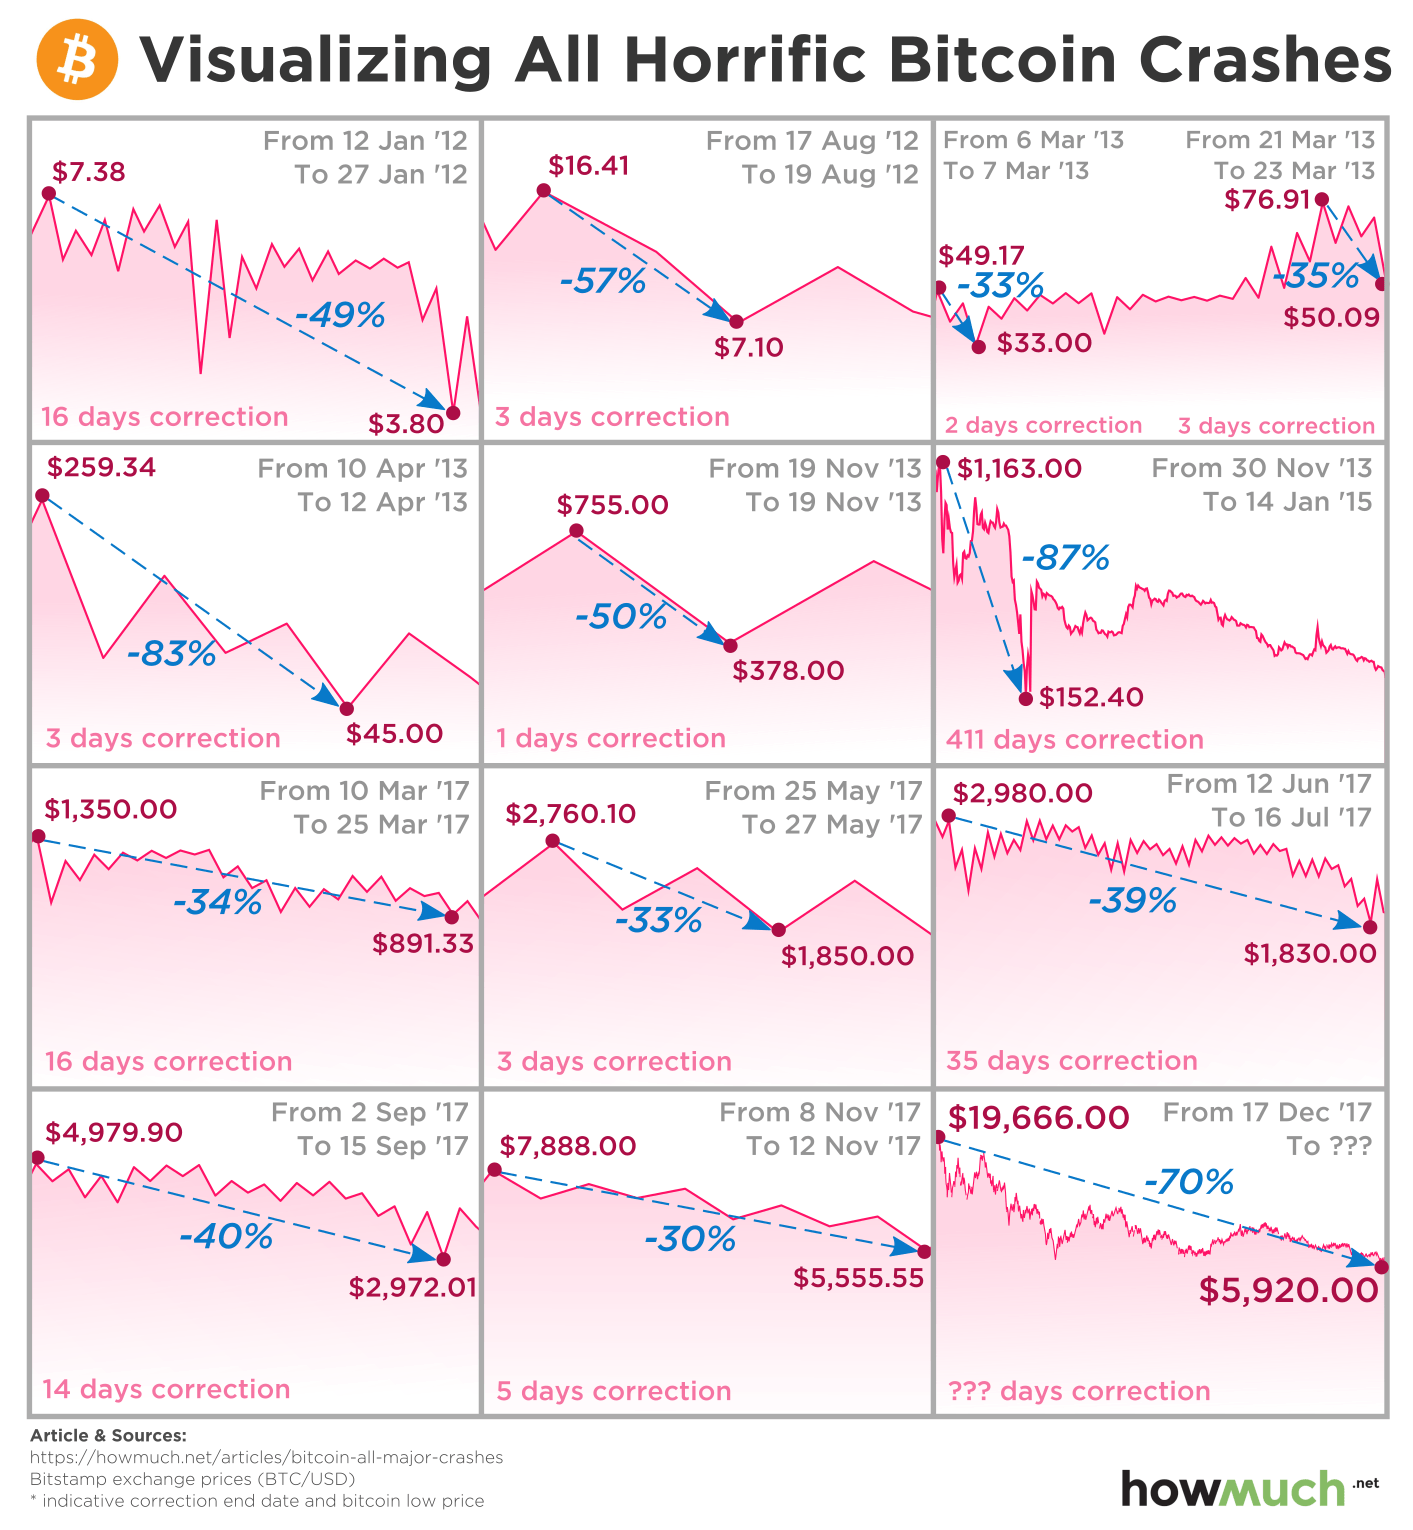 How Long is this Crypto Winter? Putting the Bitcoin Crash into Perspective